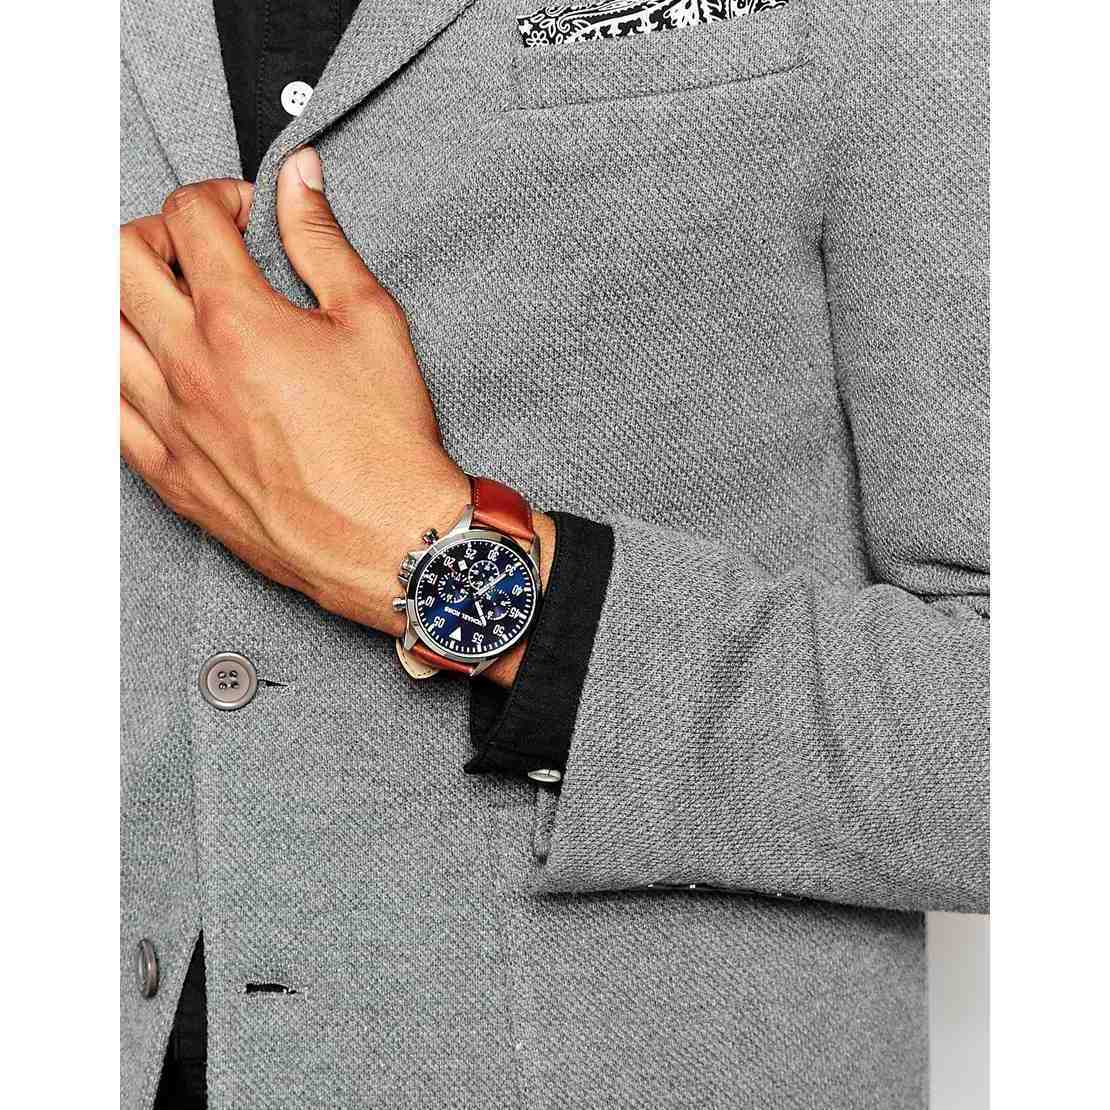 d04fca8bca62 Shop Michael Kors Men's MK8362 'Gage' Chronograph Brown Leather Watch -  Blue - Free Shipping Today - Overstock - 10283478